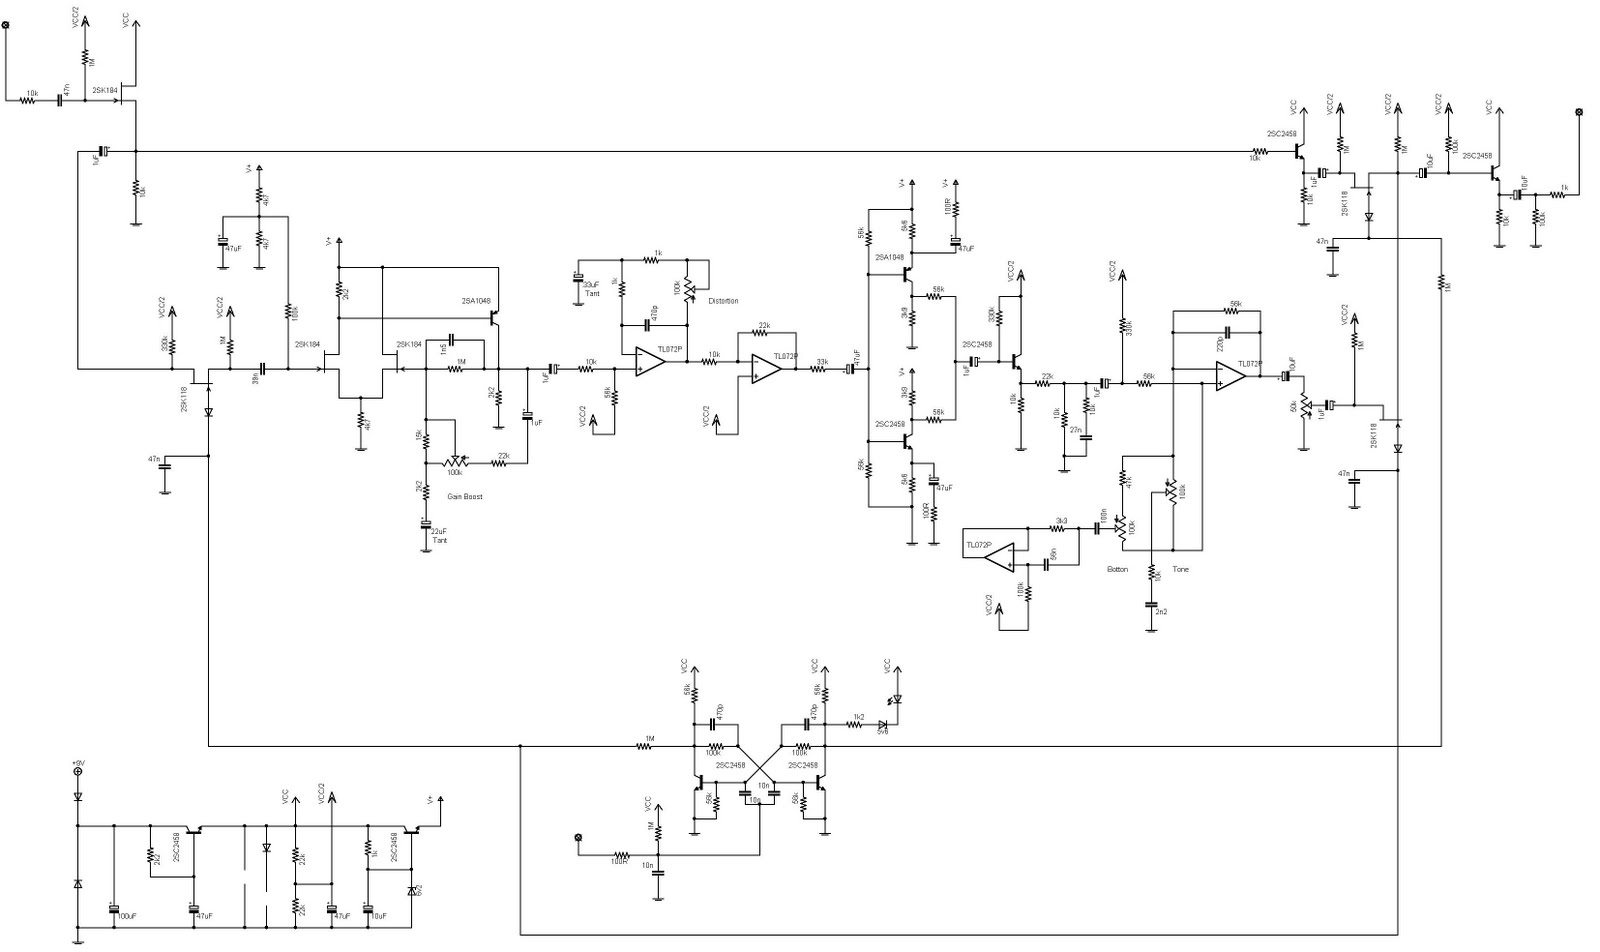 Mono Stereo Power Amplifier Using Tda1514a This Circuit Support Mono